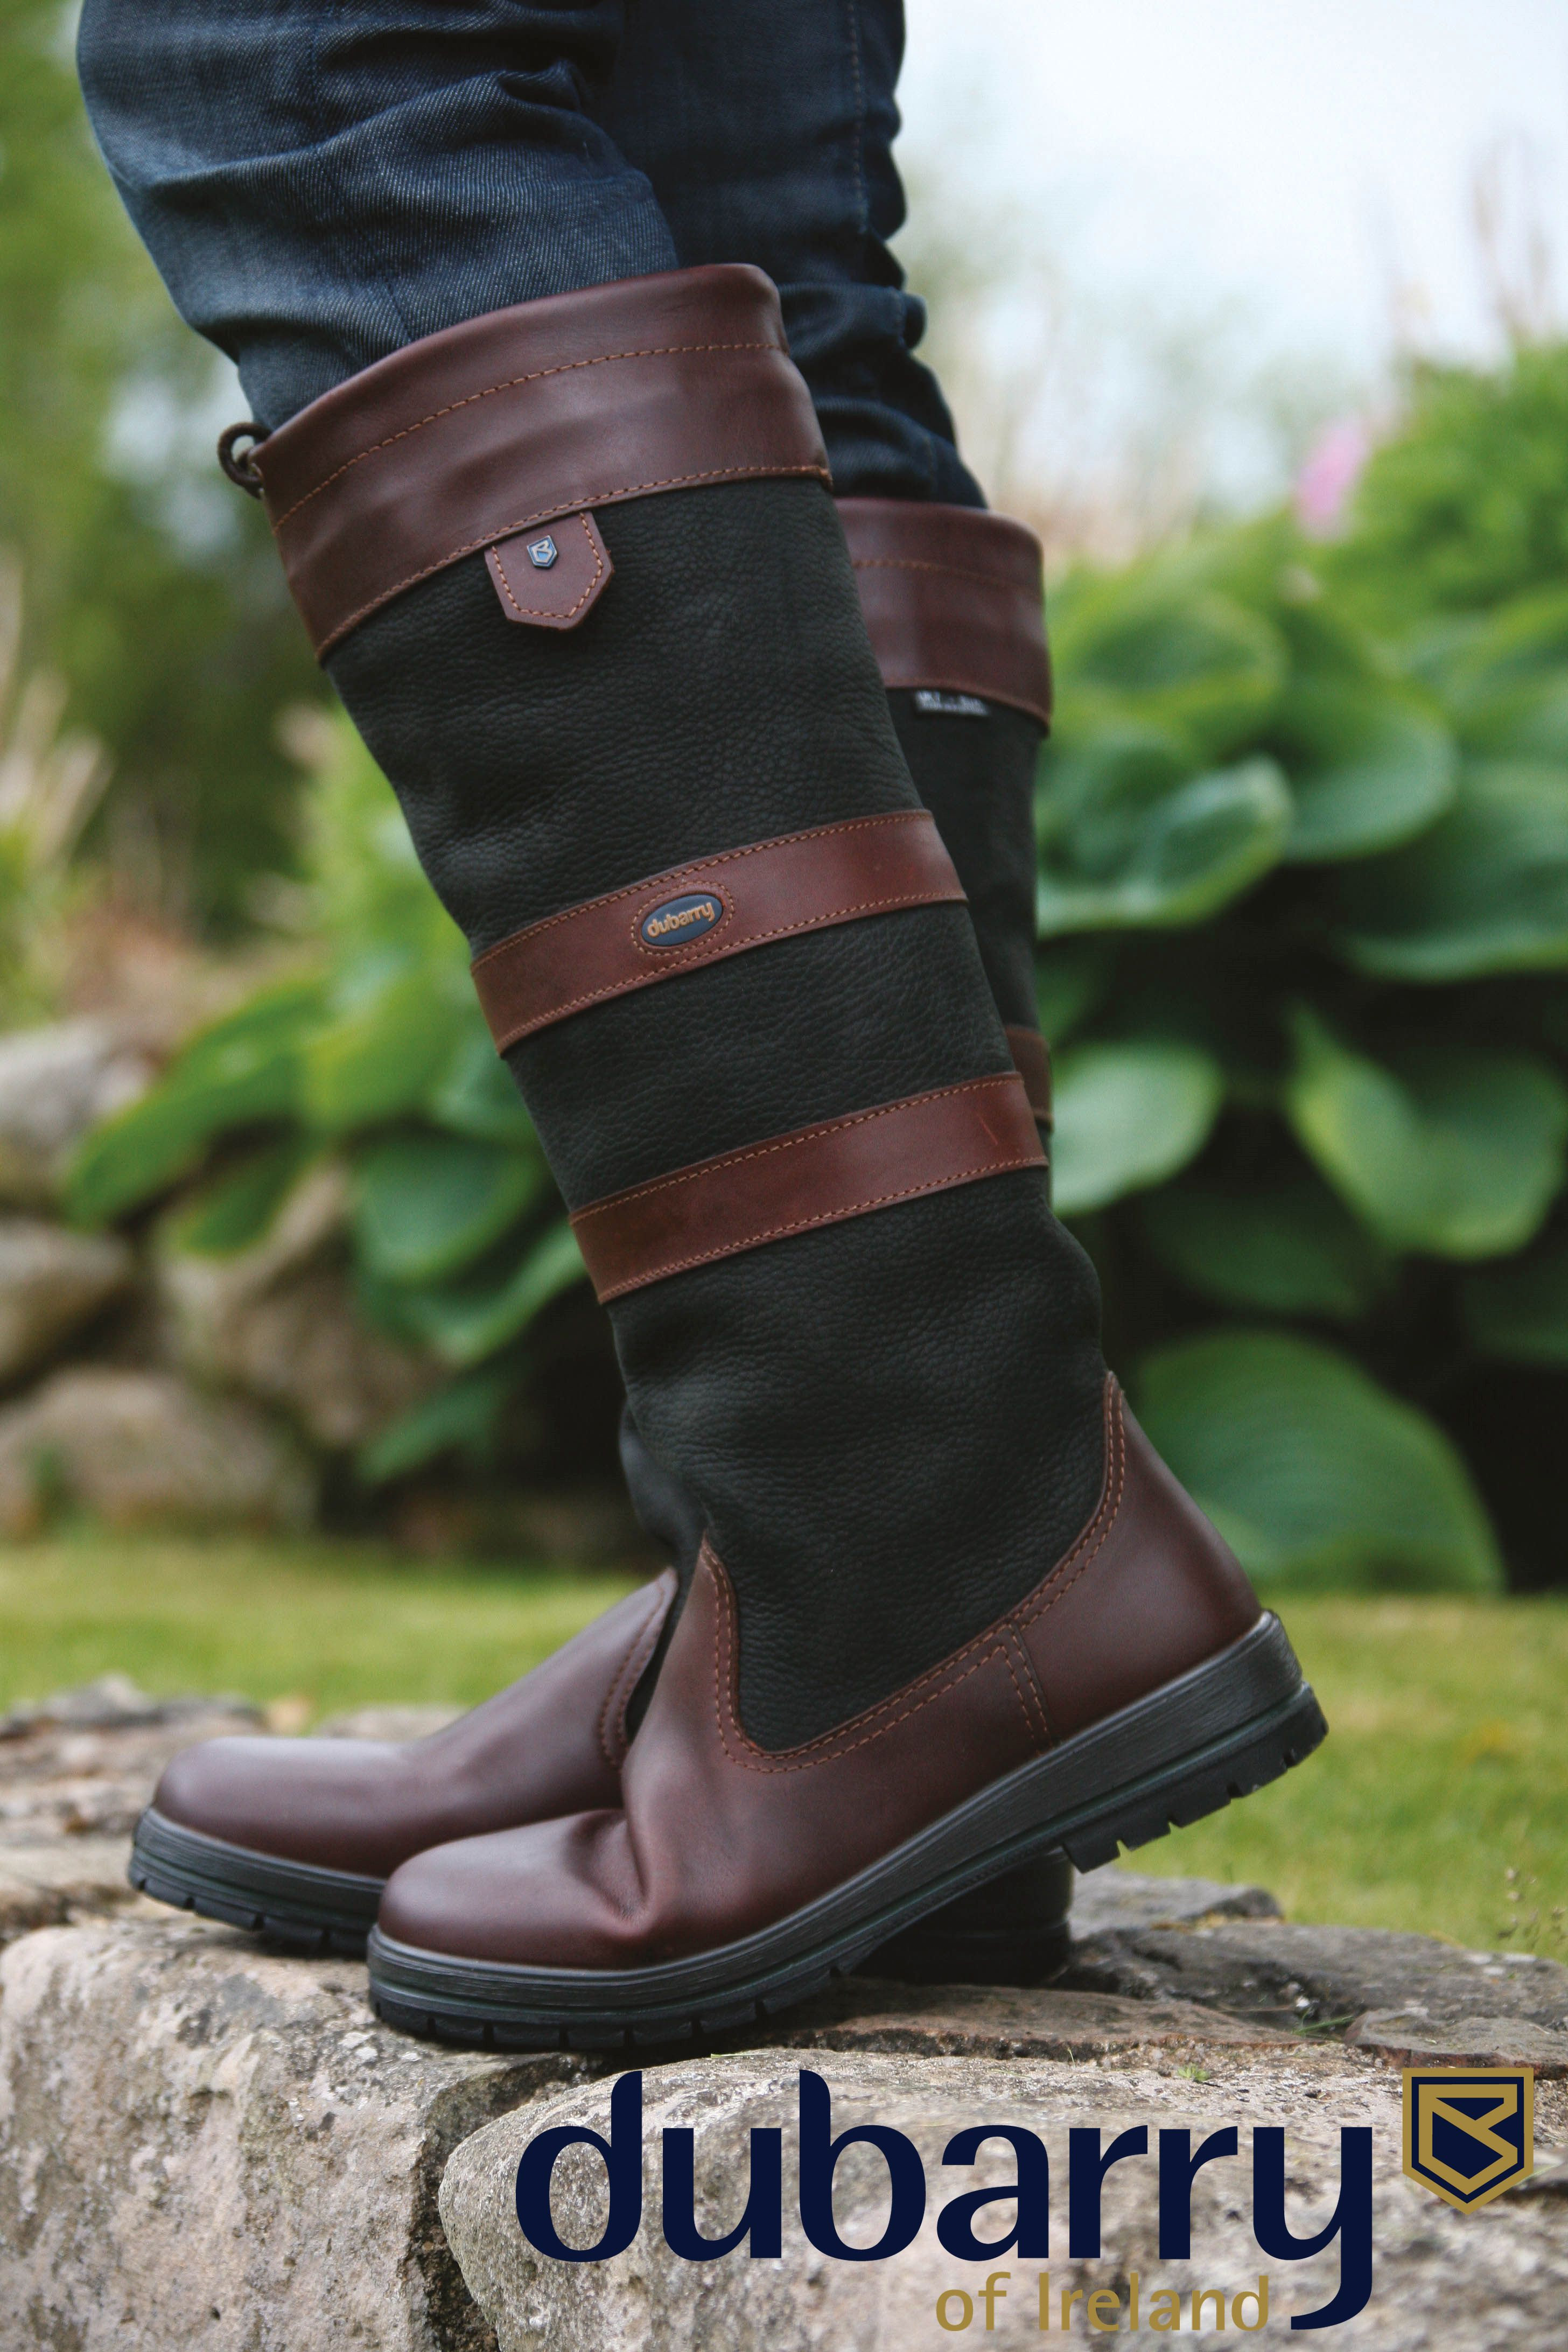 12689173cac The classic signature boot from #Dubarry in Black/Brown.#GoreTex ...